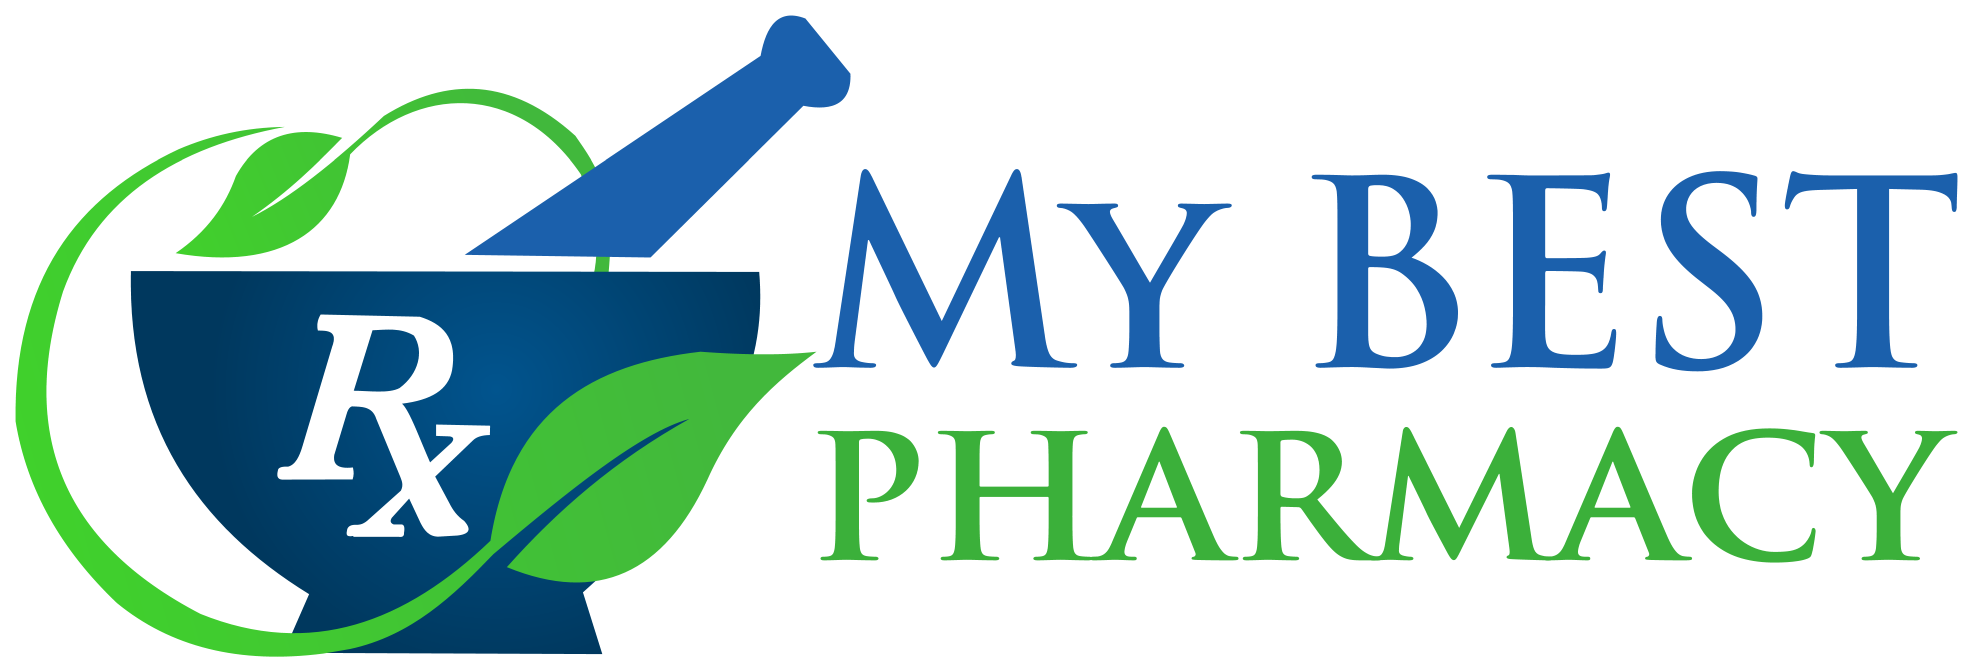 My Best Pharmacy